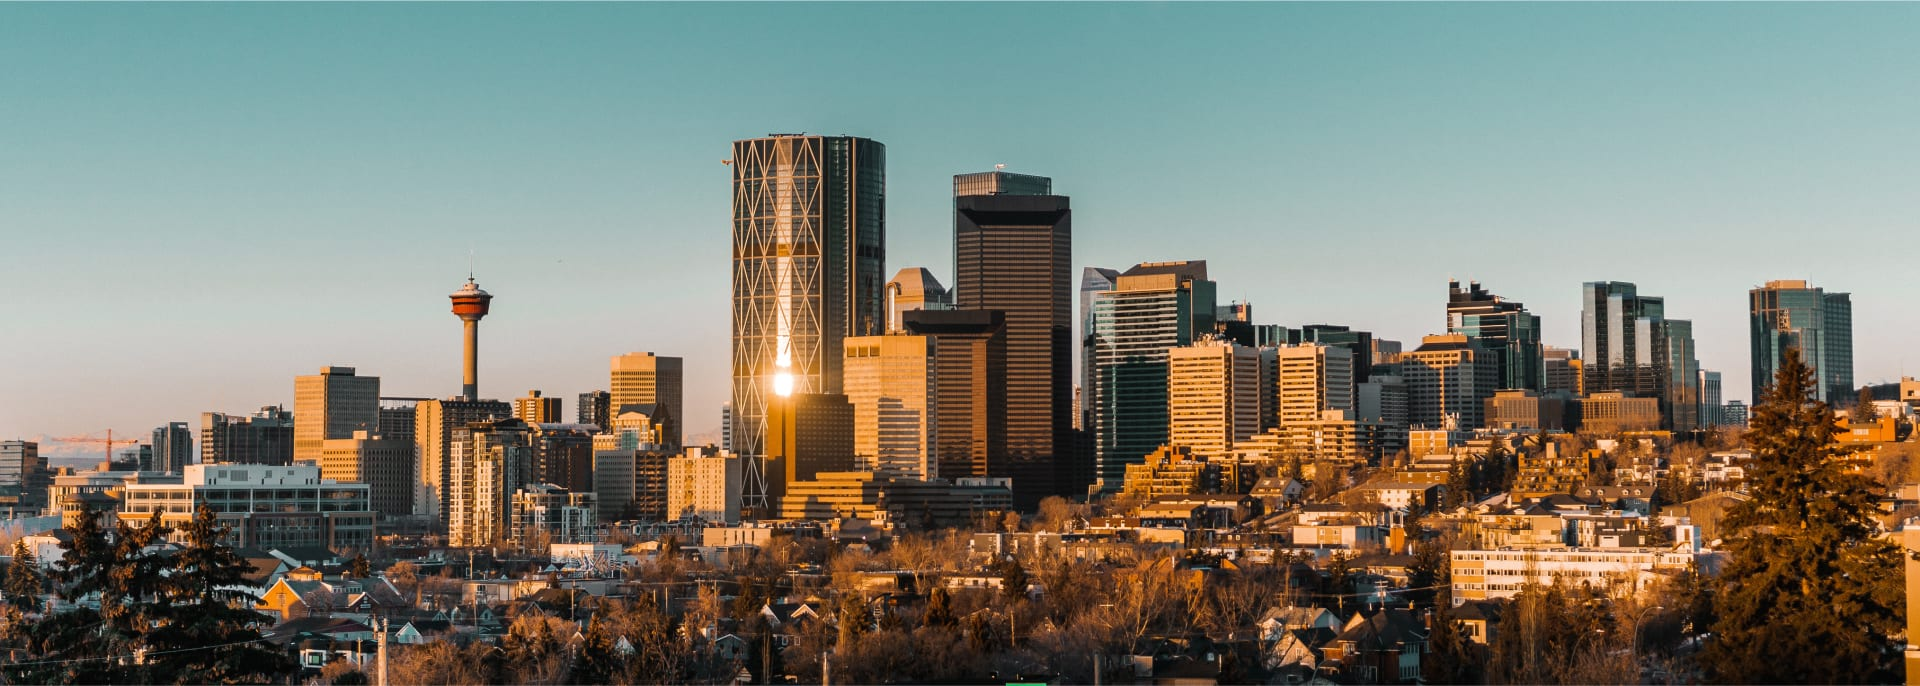 Calgary skyline in the early morning